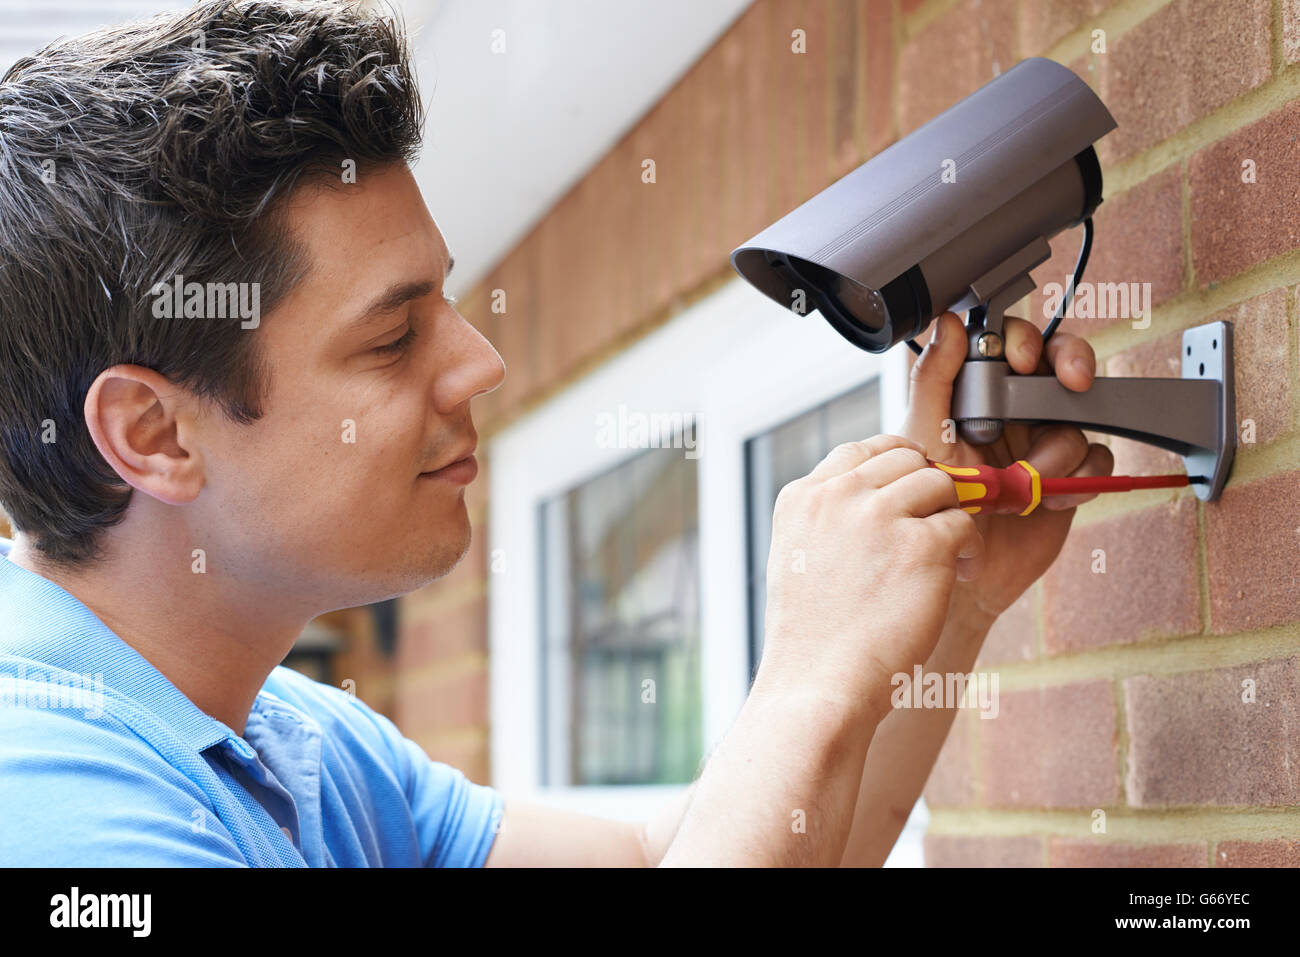 Security Consultant Fitting Security Camera To House Wall Stock Photo